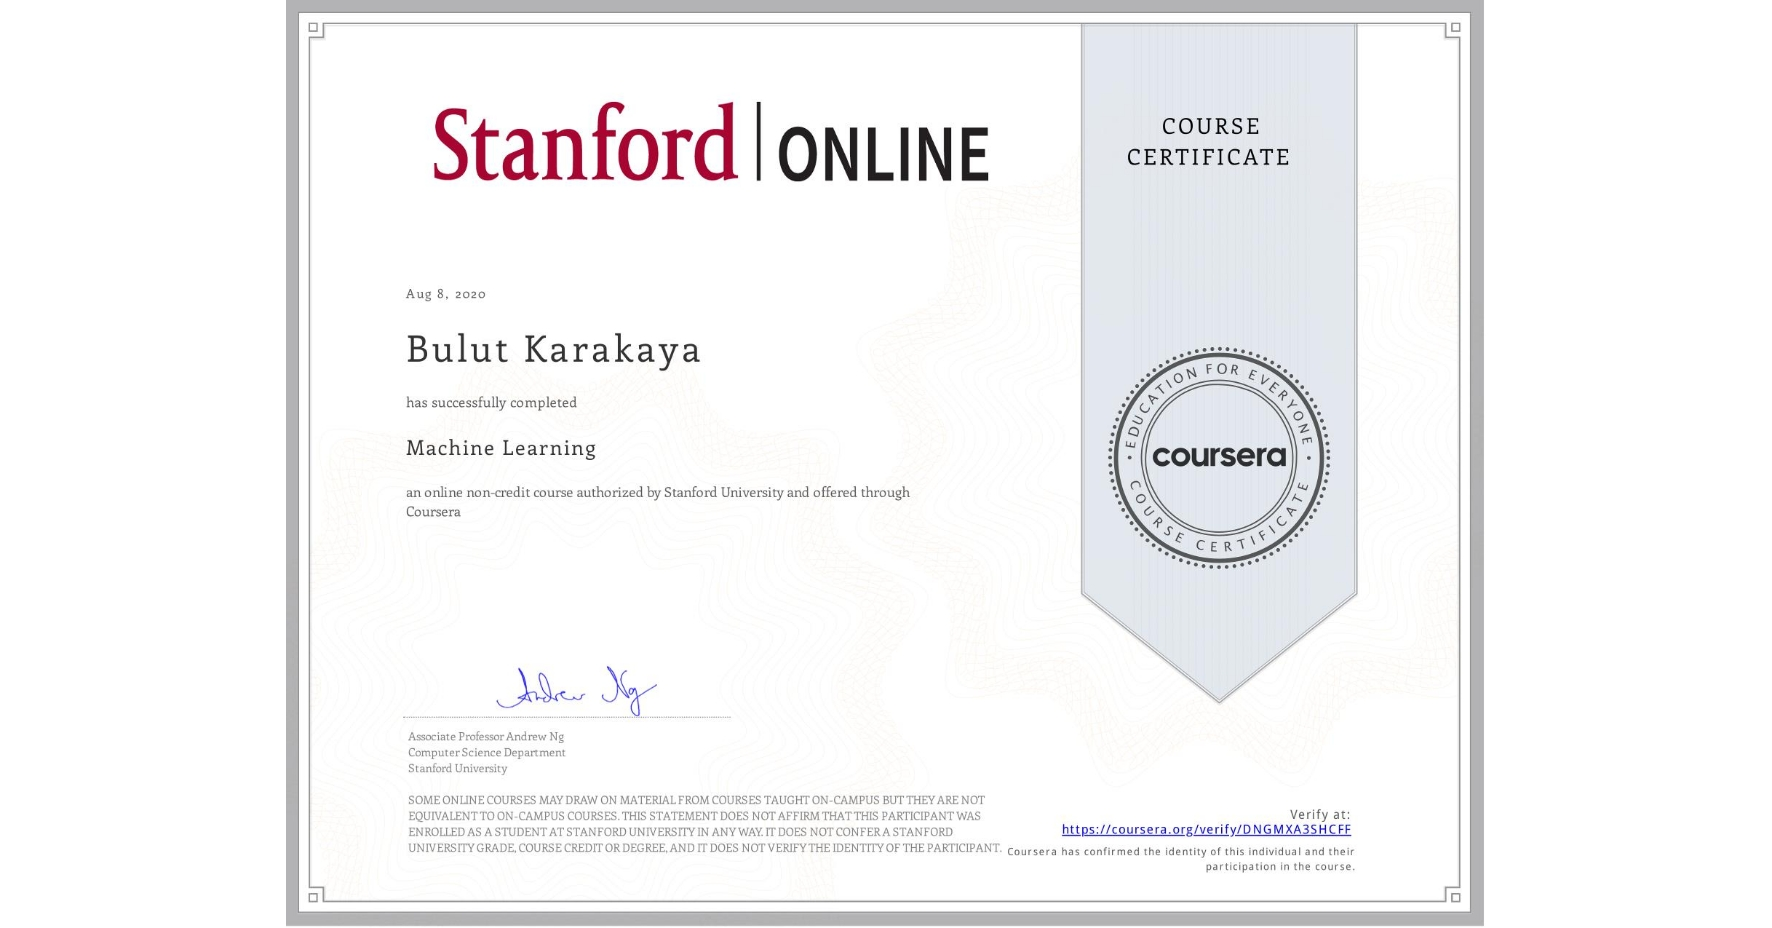 View certificate for Bulut Karakaya, Machine Learning, an online non-credit course authorized by Stanford University and offered through Coursera